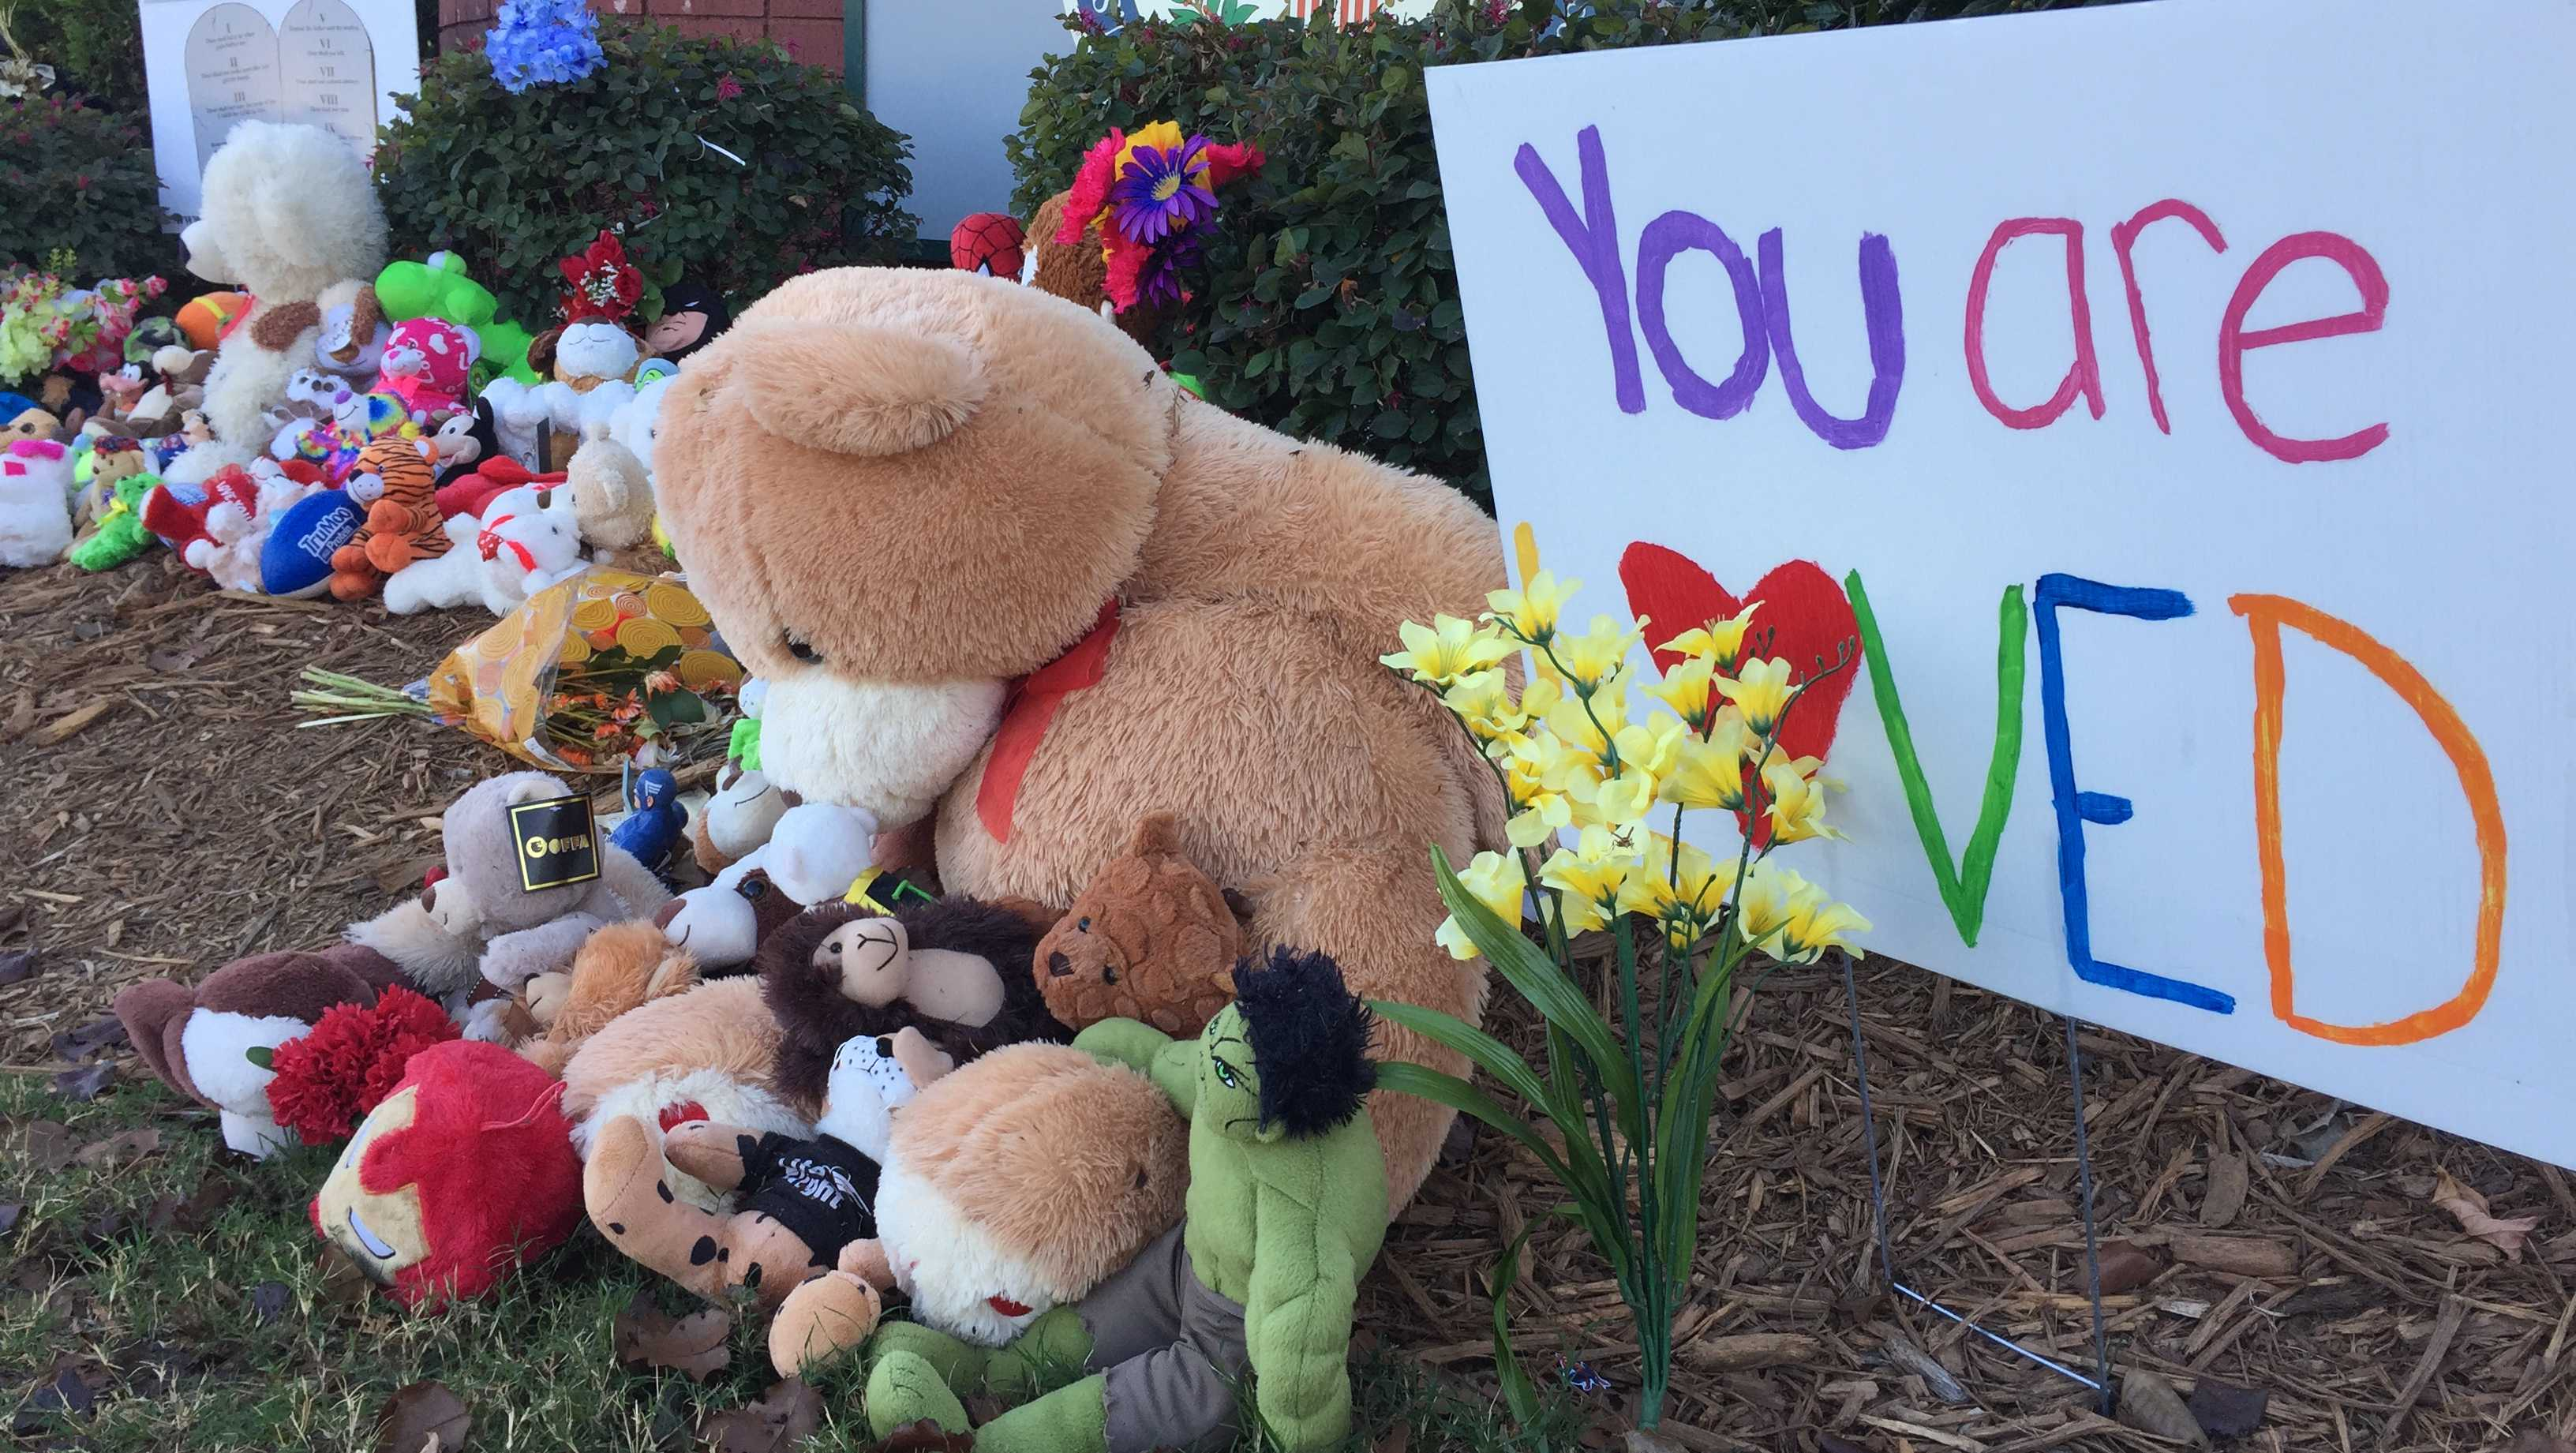 A memorial for Jacob Hall continues to grow one month after the shooting